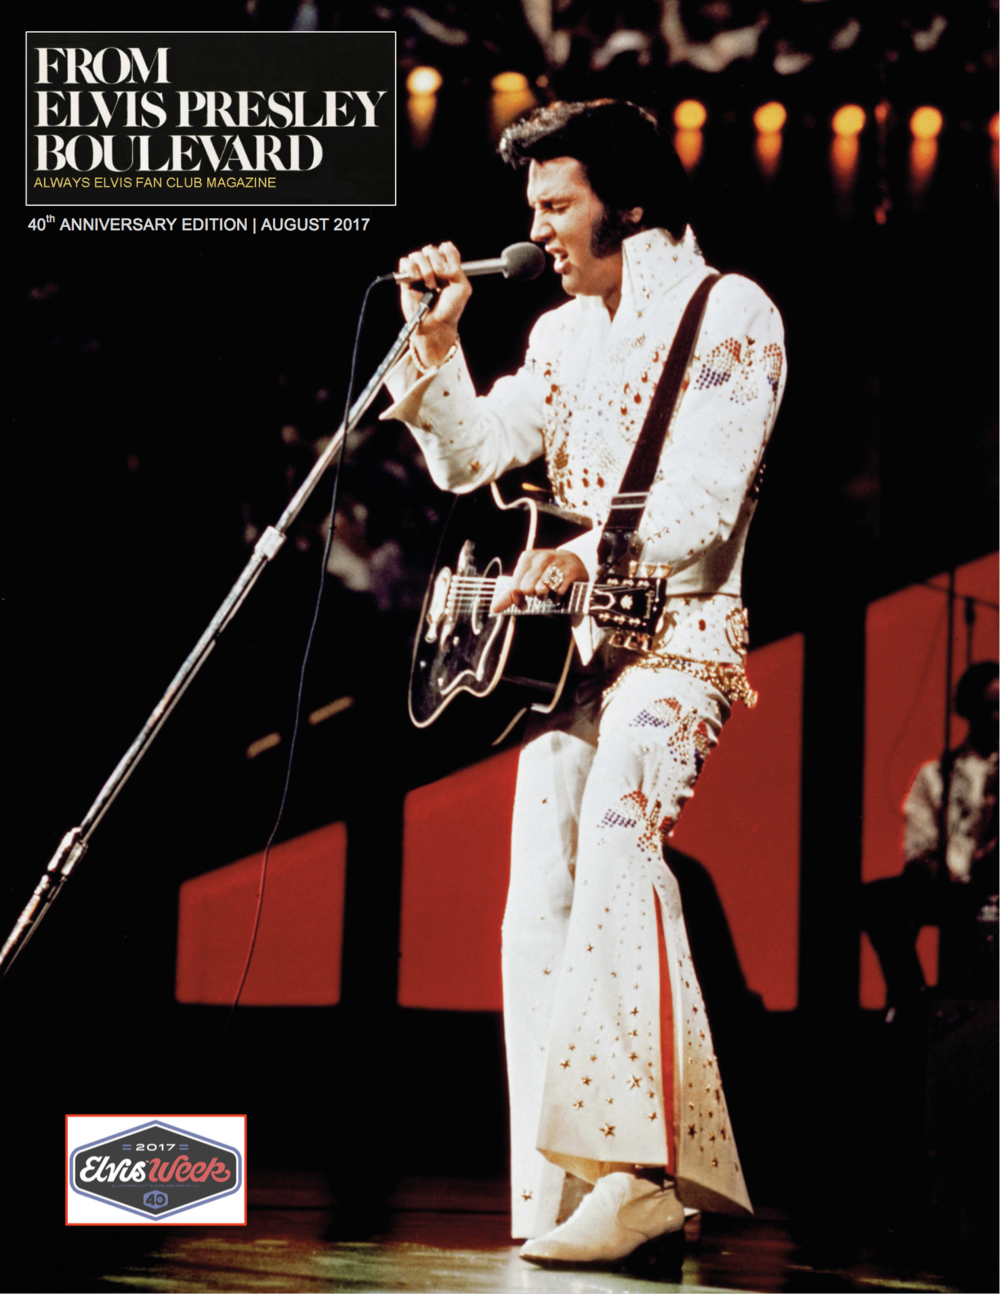 From Elvis Presley Boulevard Online Magazine now available.